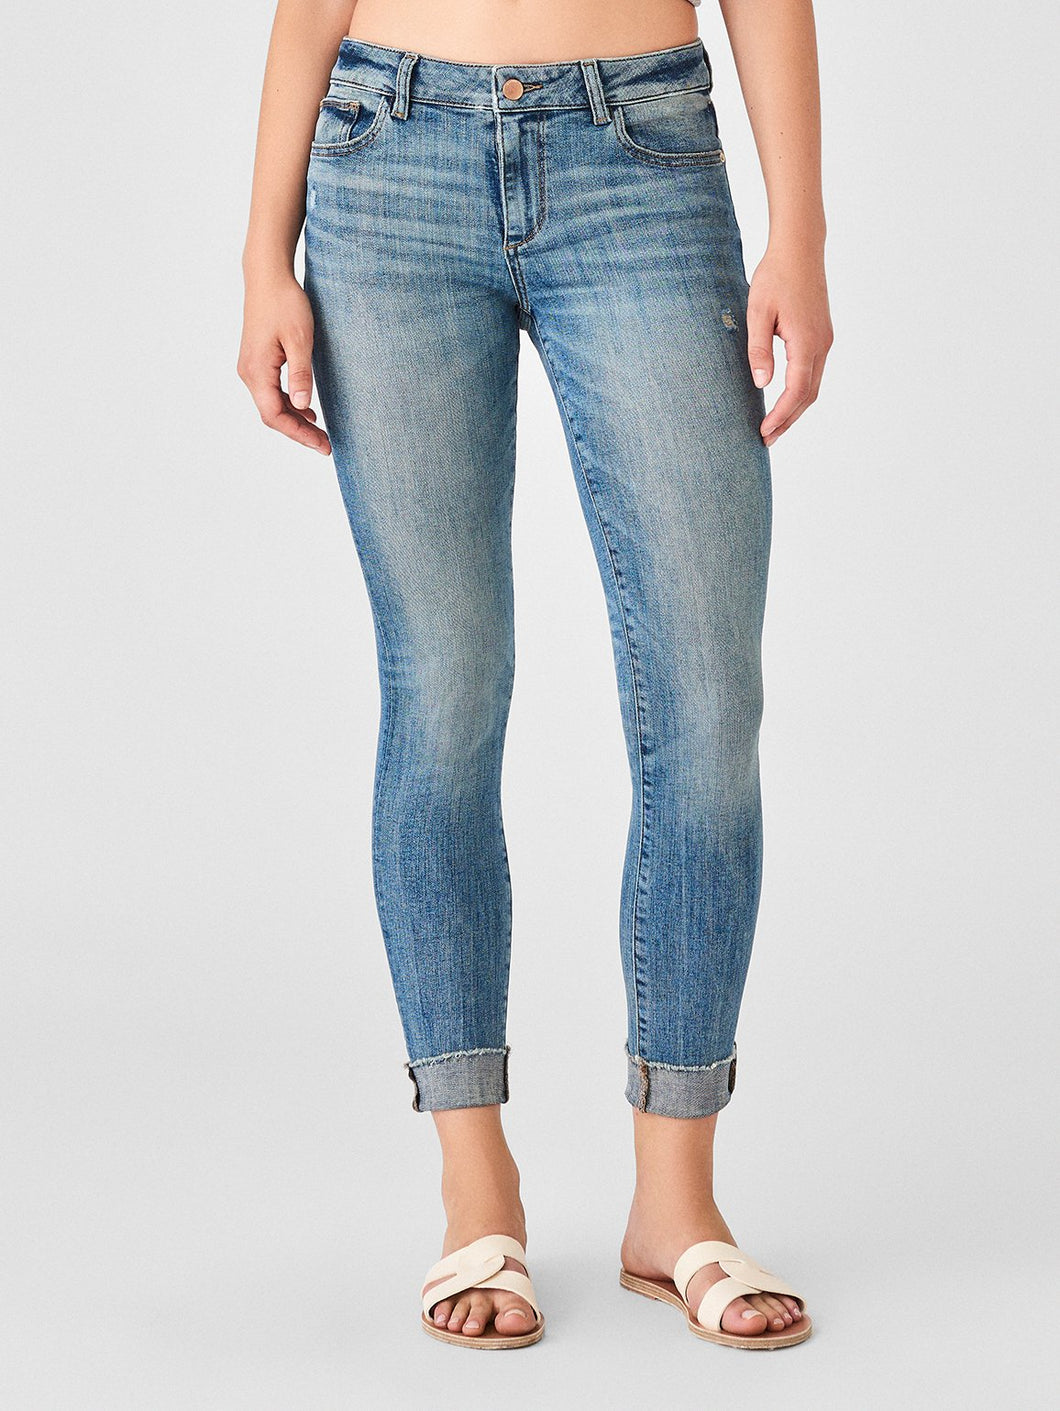 Florence Ankle Midrise Ulrasculpt Skinny  in Indio  by DL1961